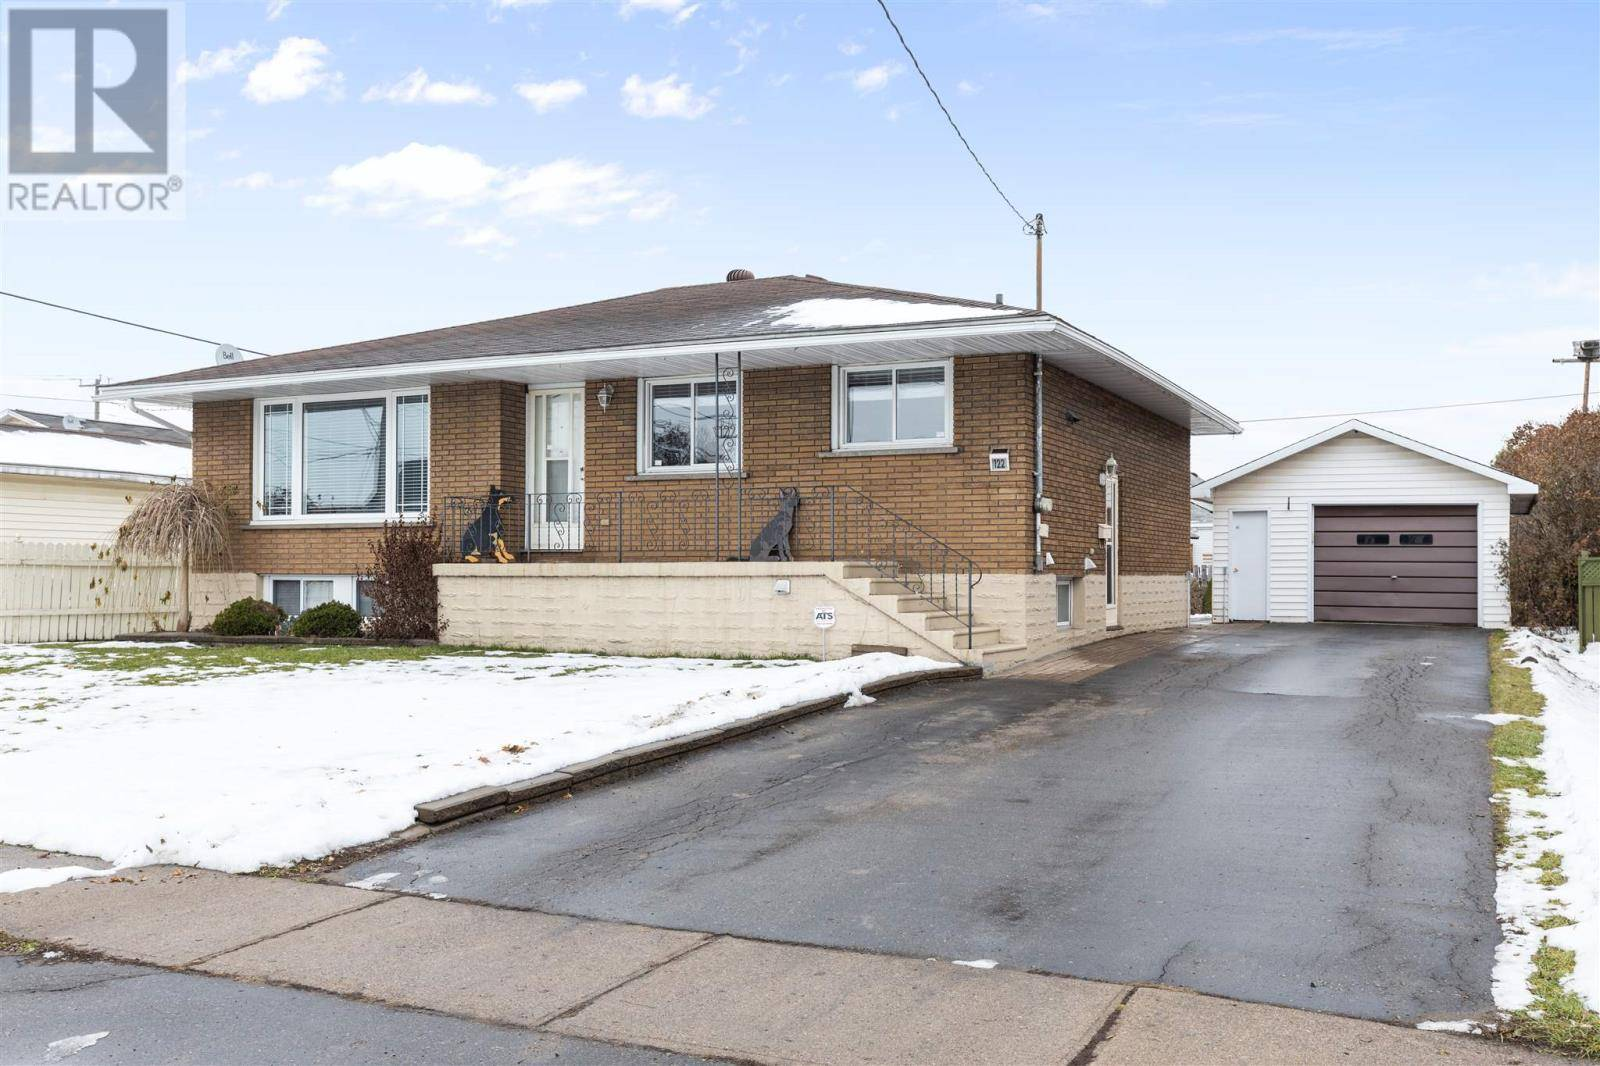 House for sale at 122 Mcfadden Ave Sault Ste. Marie Ontario - MLS: SM127474